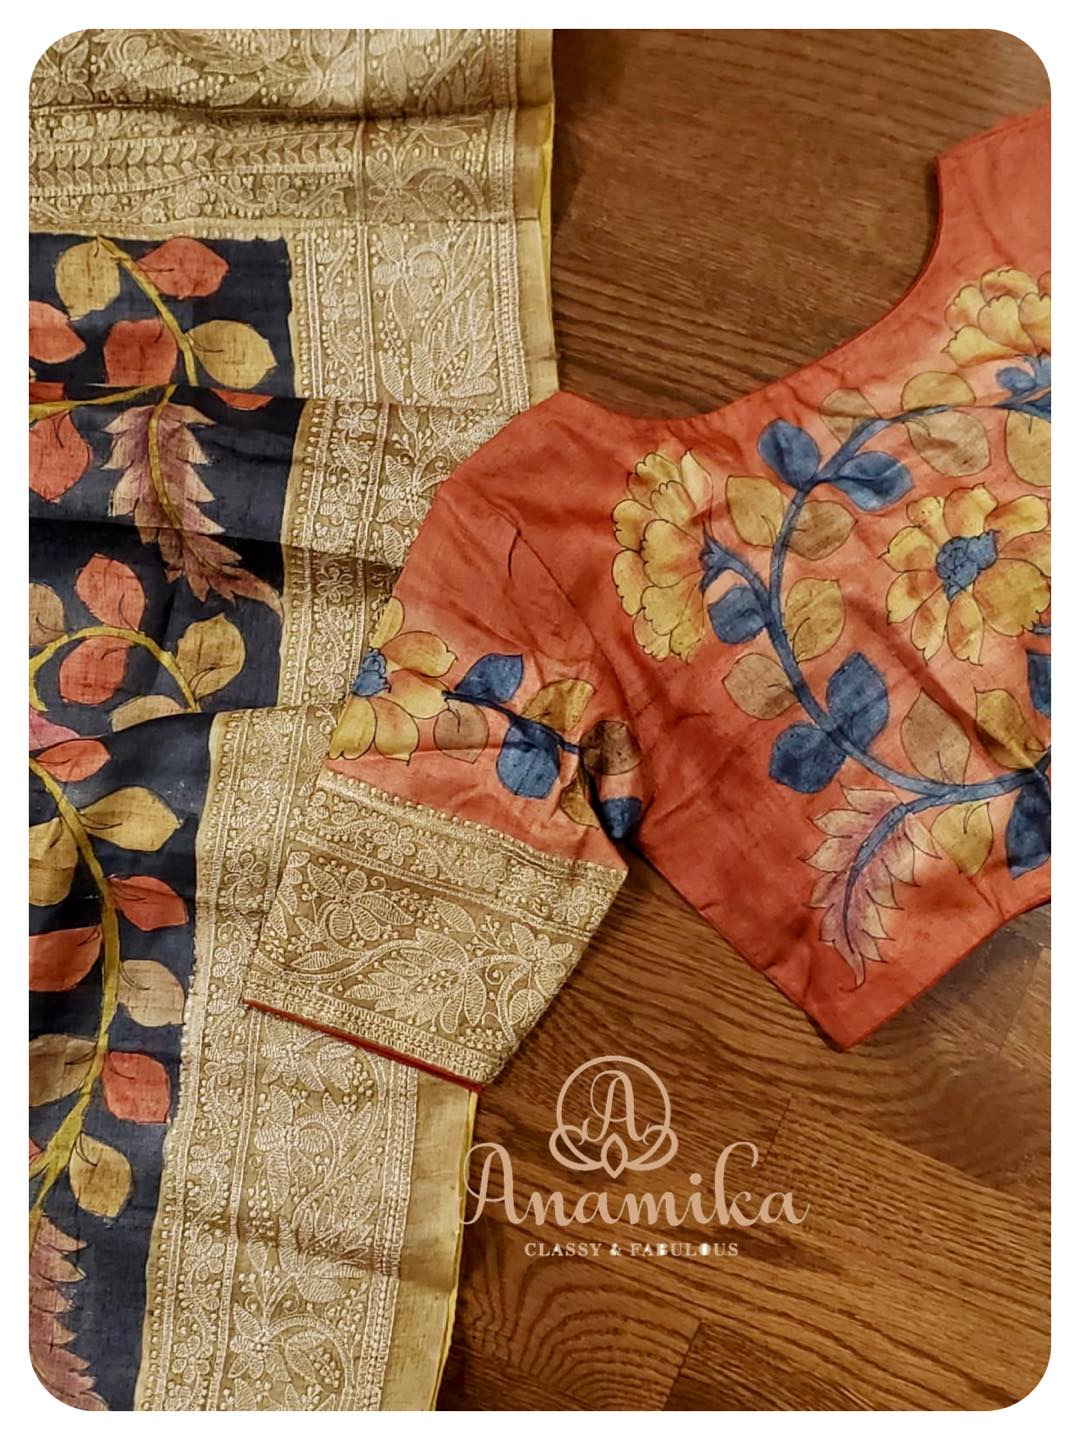 Handloom . Lets celebrate an all-time favorite saree - Hand painted kalamkari on tussar. Classic & Eternal !! DM 360-545-3636 for inquiries 2021-06-05